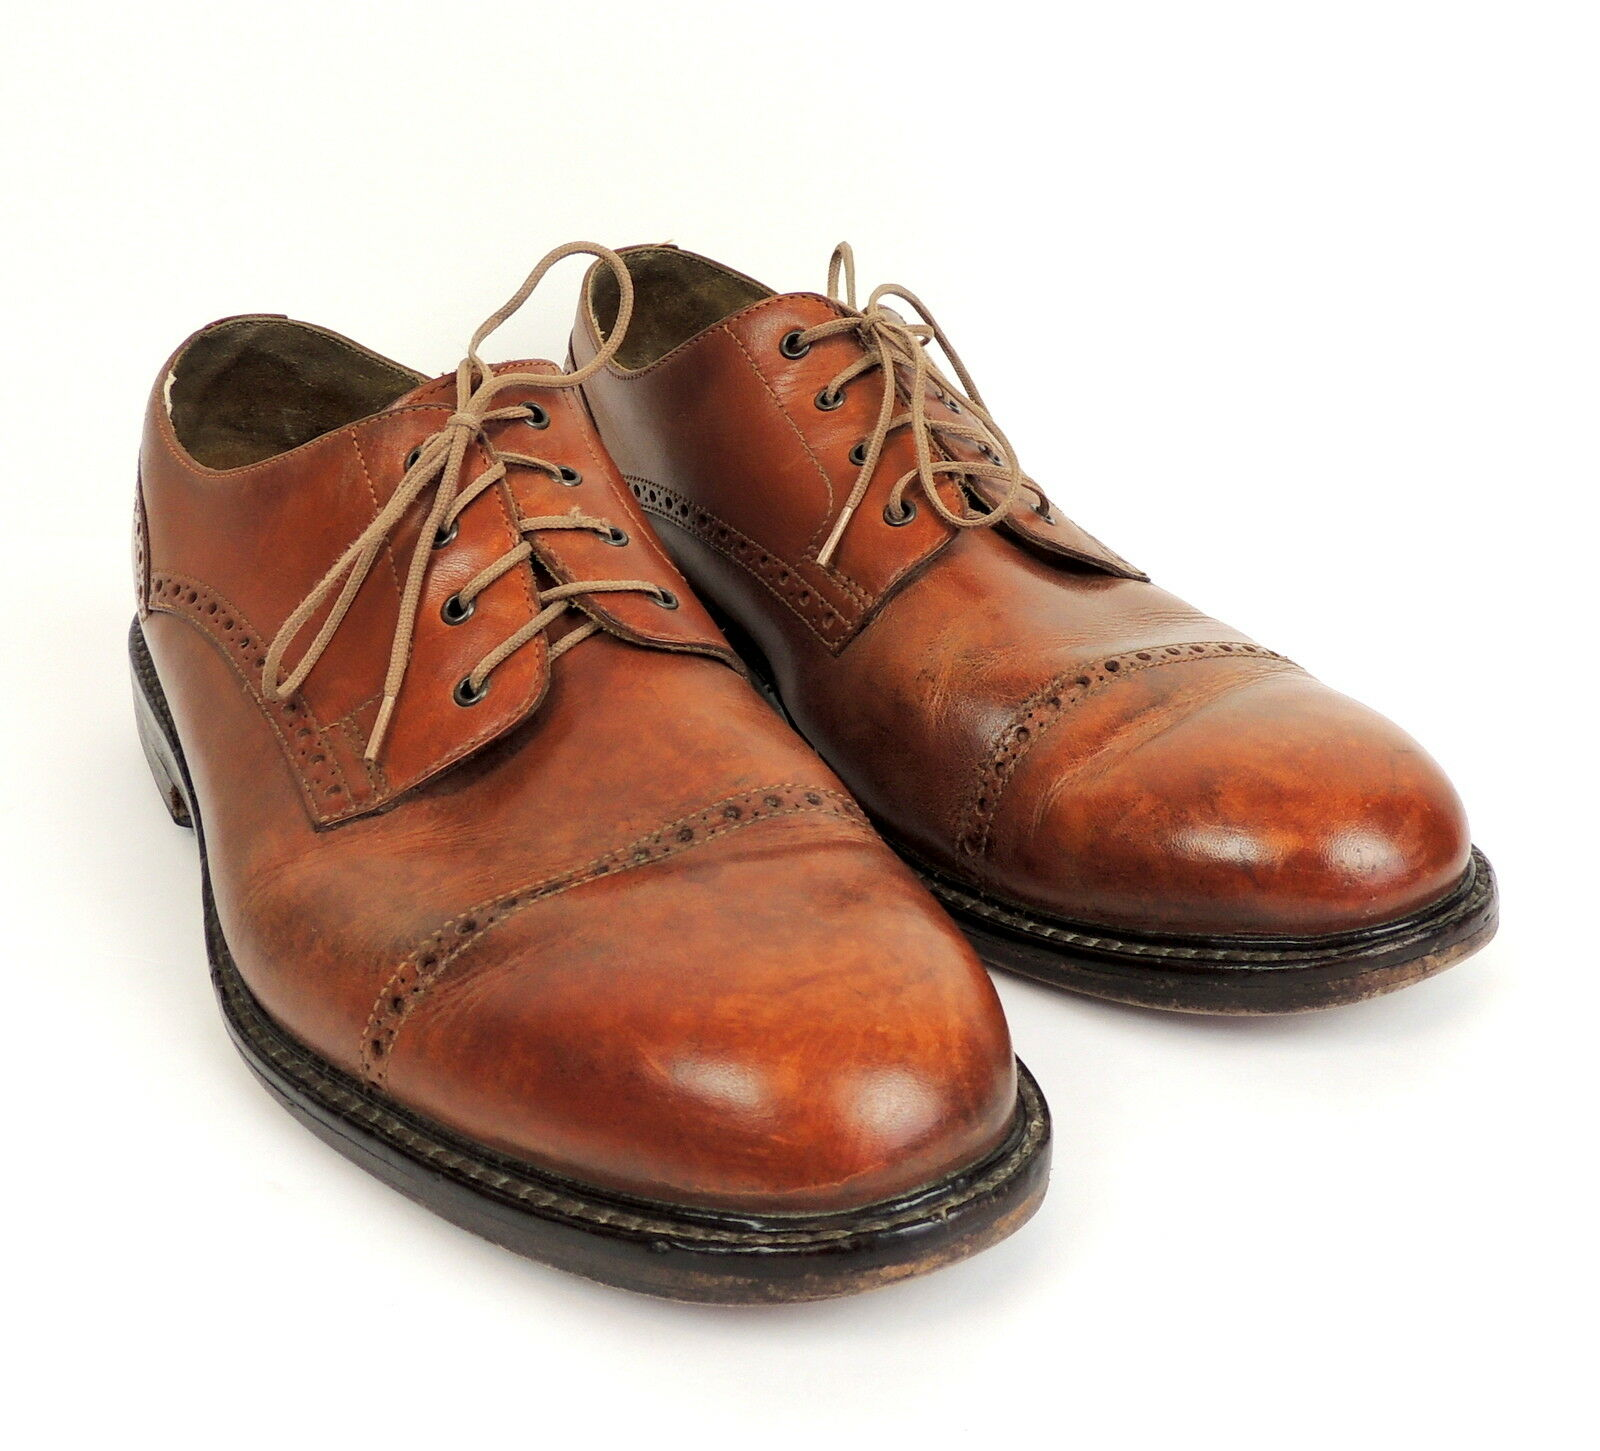 Ralph Lauren Polo Mens 11 Wing Tip Cap Toe Leather Oxford schuhe braun Leather